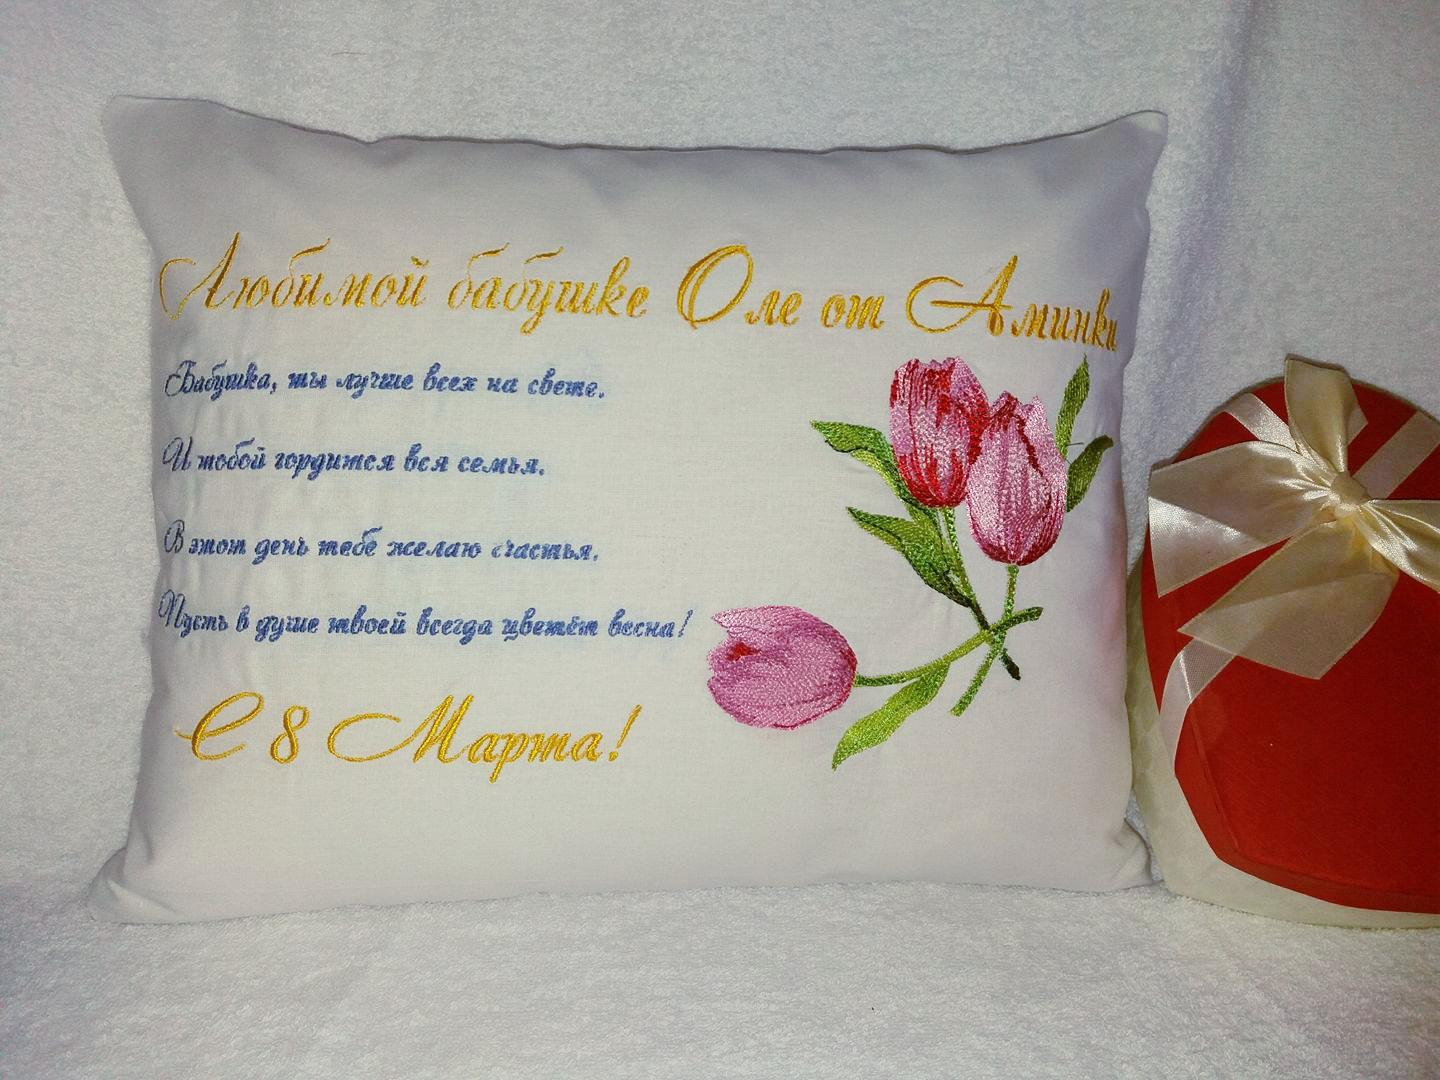 Embroidered cushion with pink tulips design